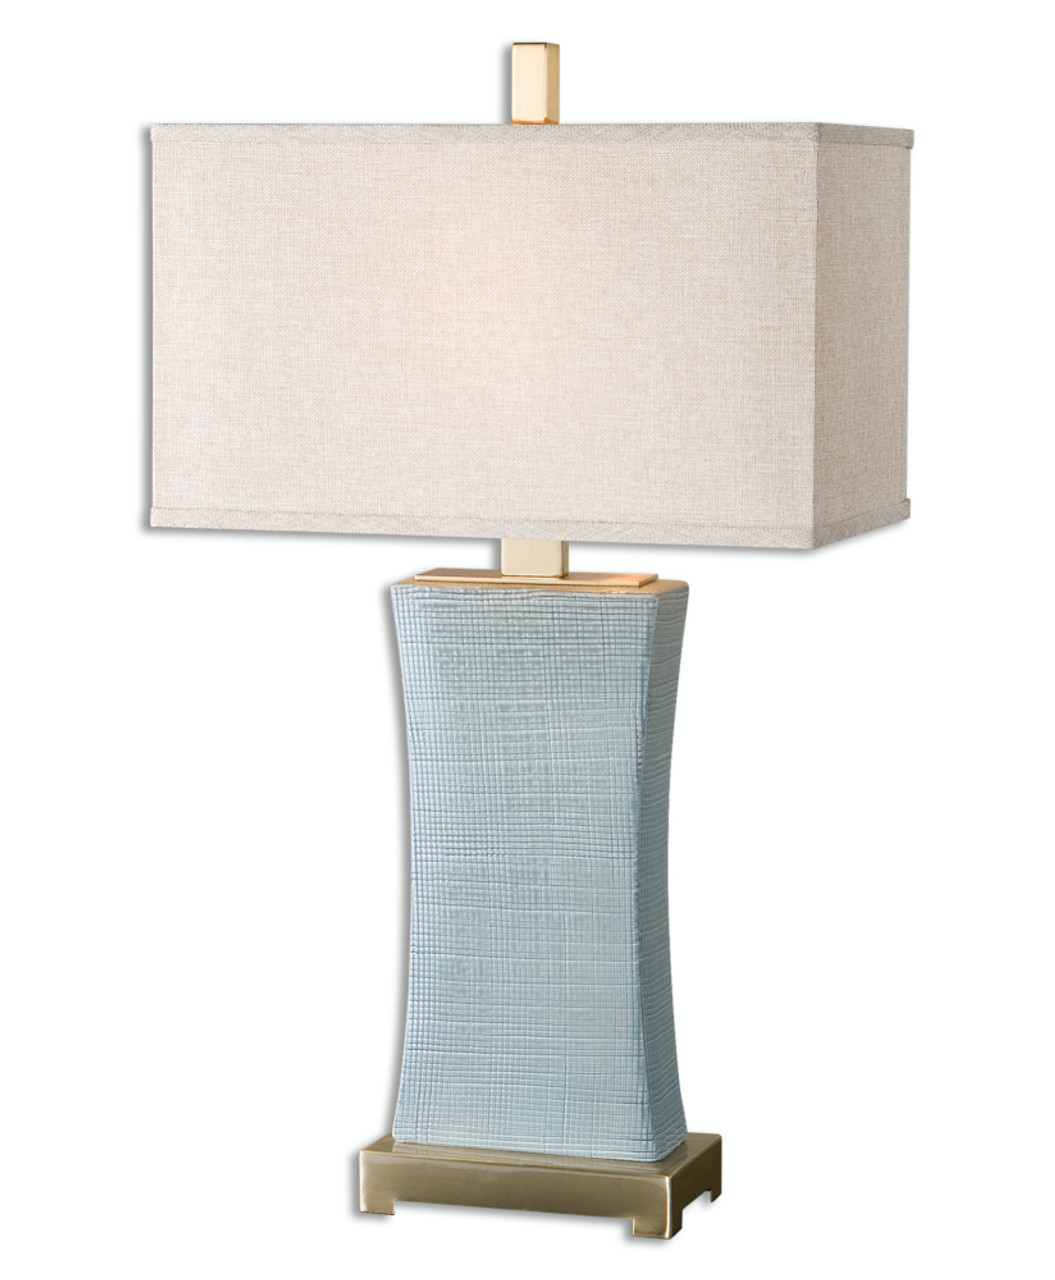 29 Textured Pale Blue Gray Ceramic Table Lamp With Beige Linen